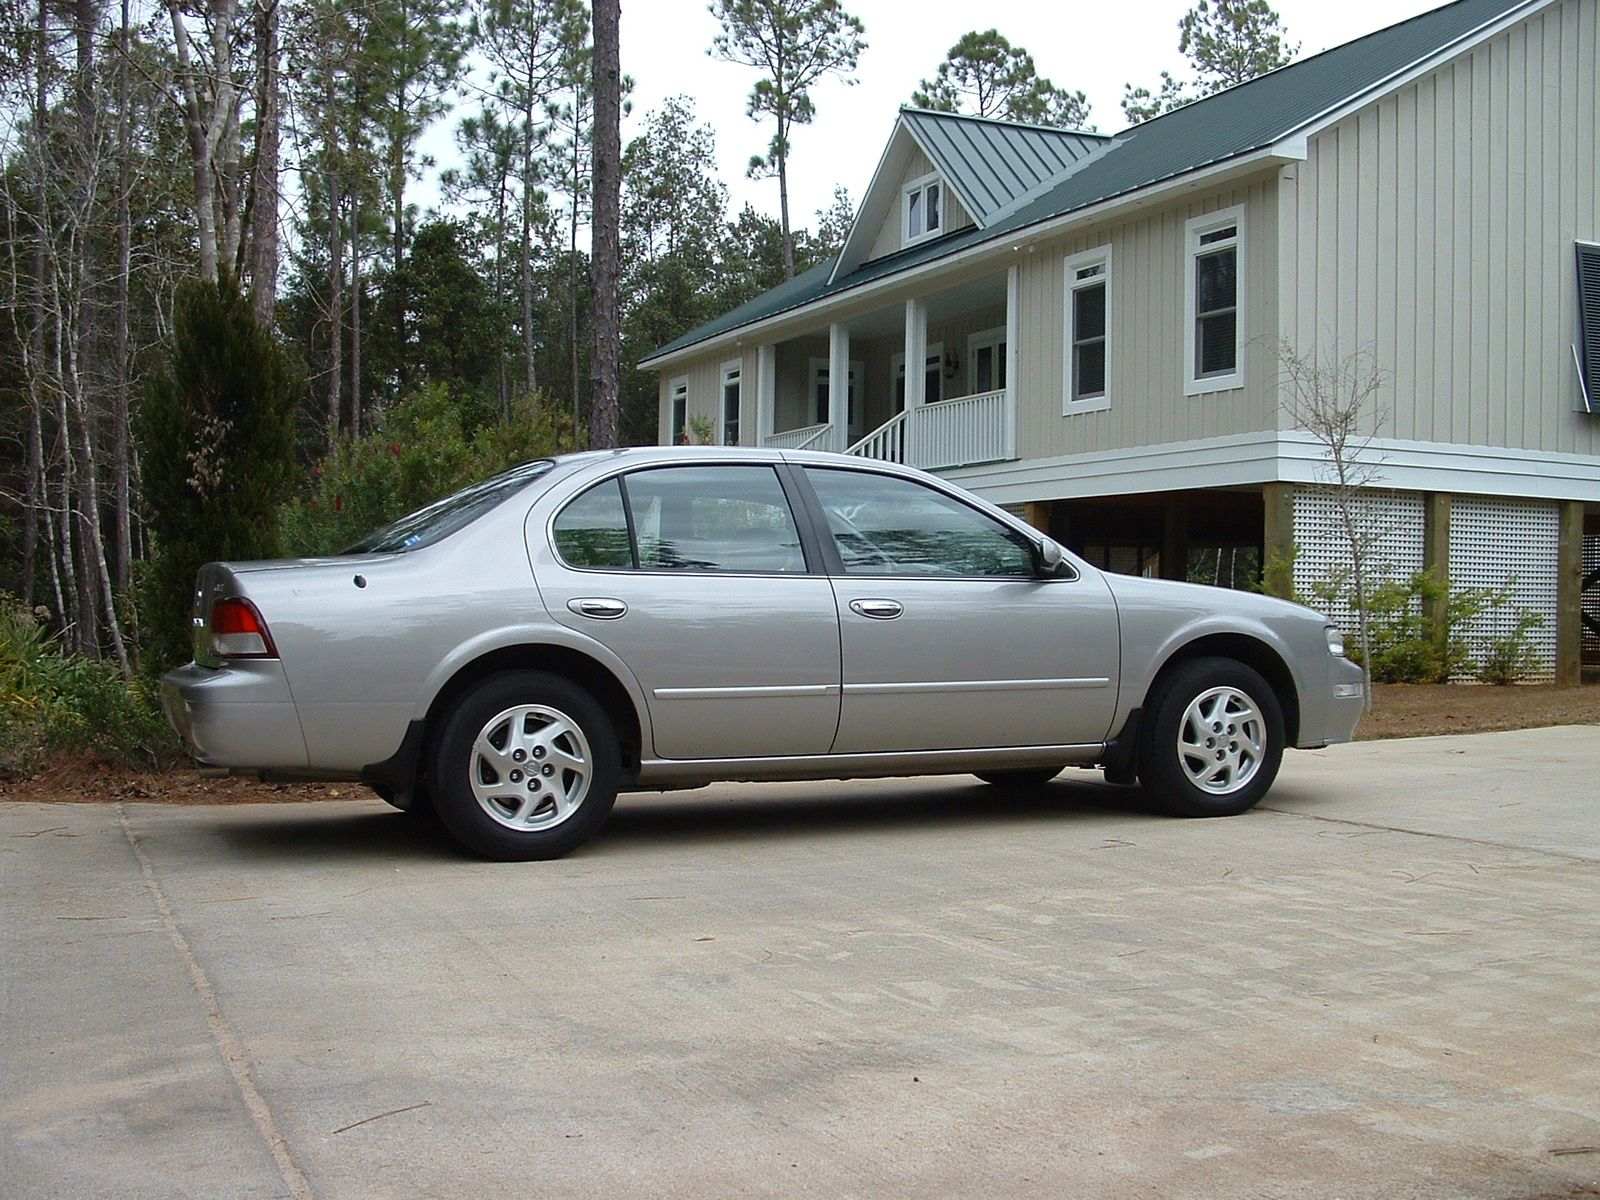 medium resolution of 1999 nissan maxima this car was sporty and fully loaded i liked driving it